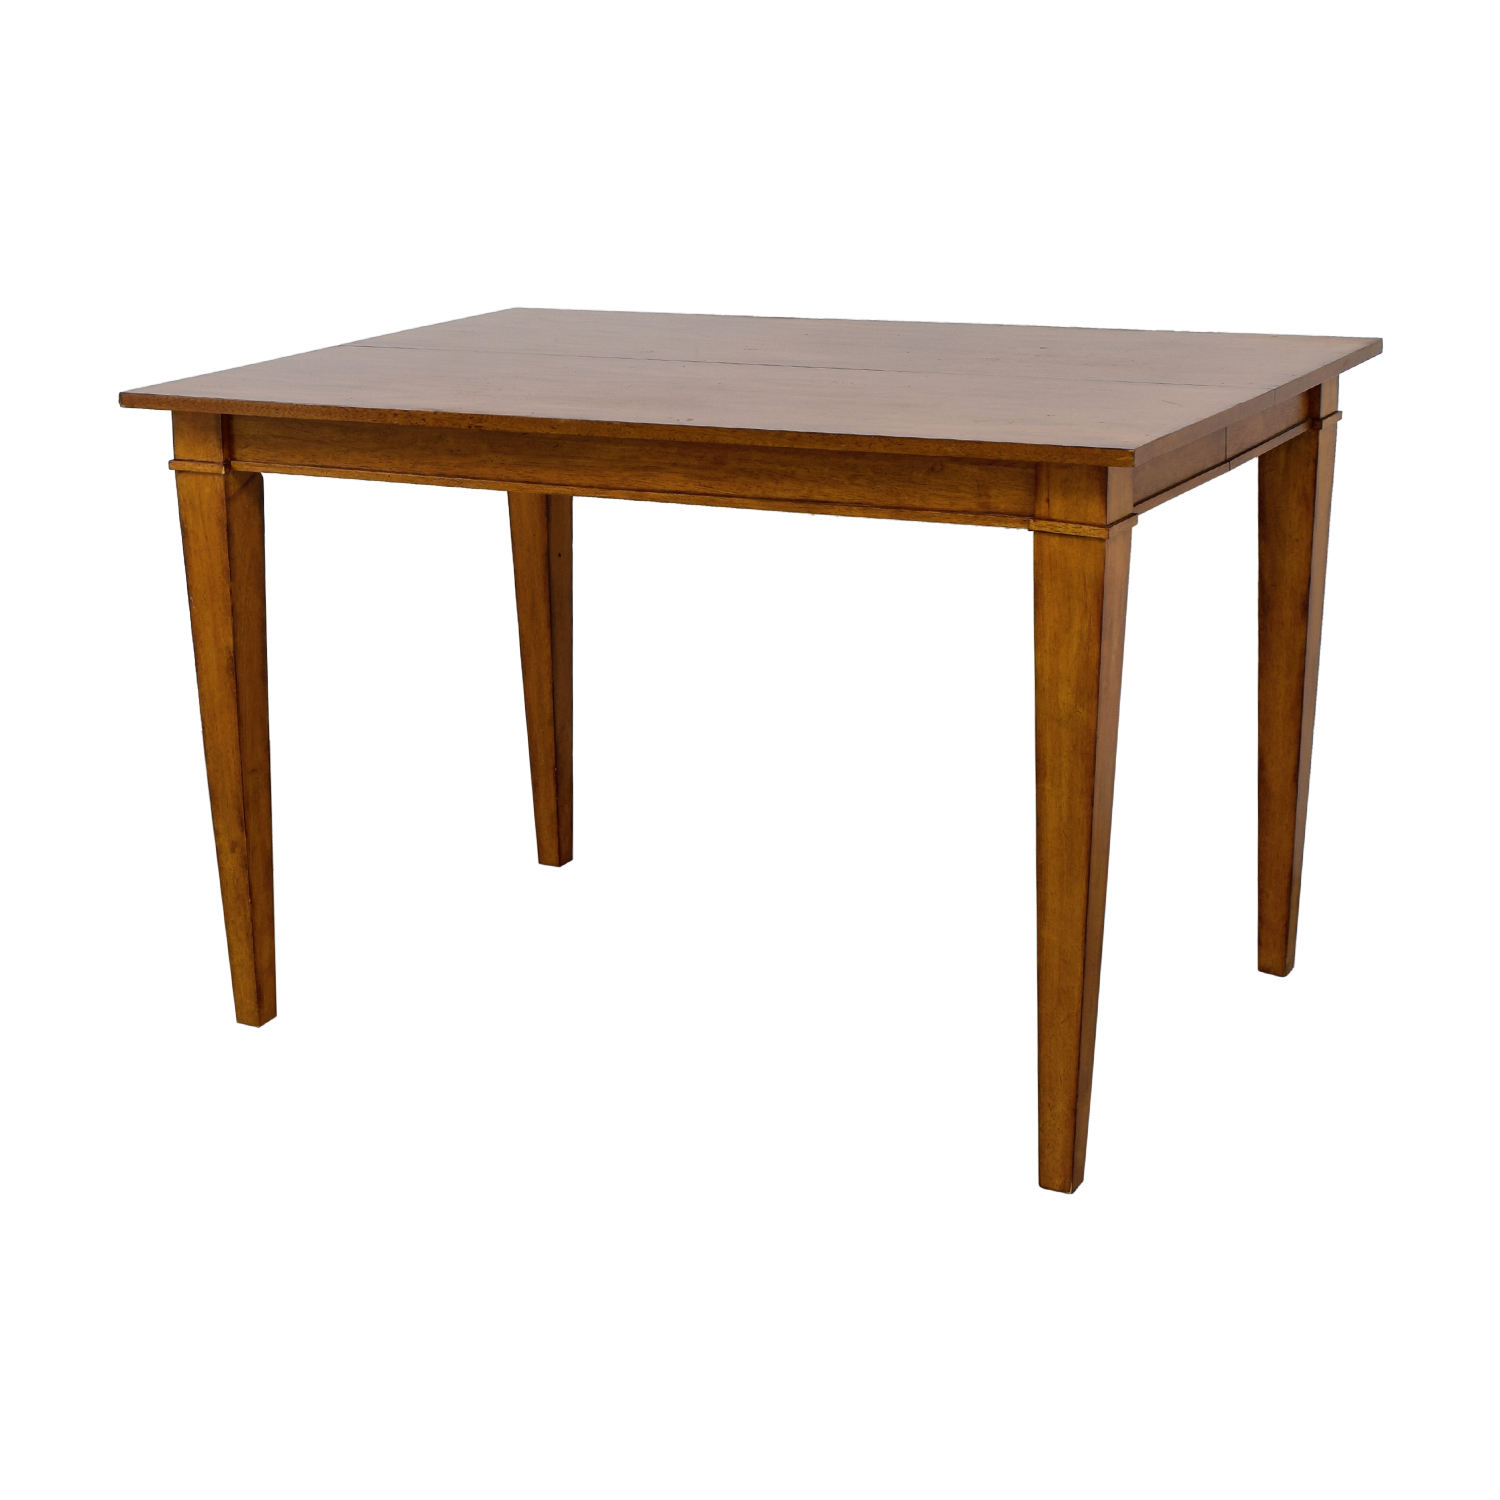 Ethan Allen Ethan Allen Wood Expandable Dining Table price